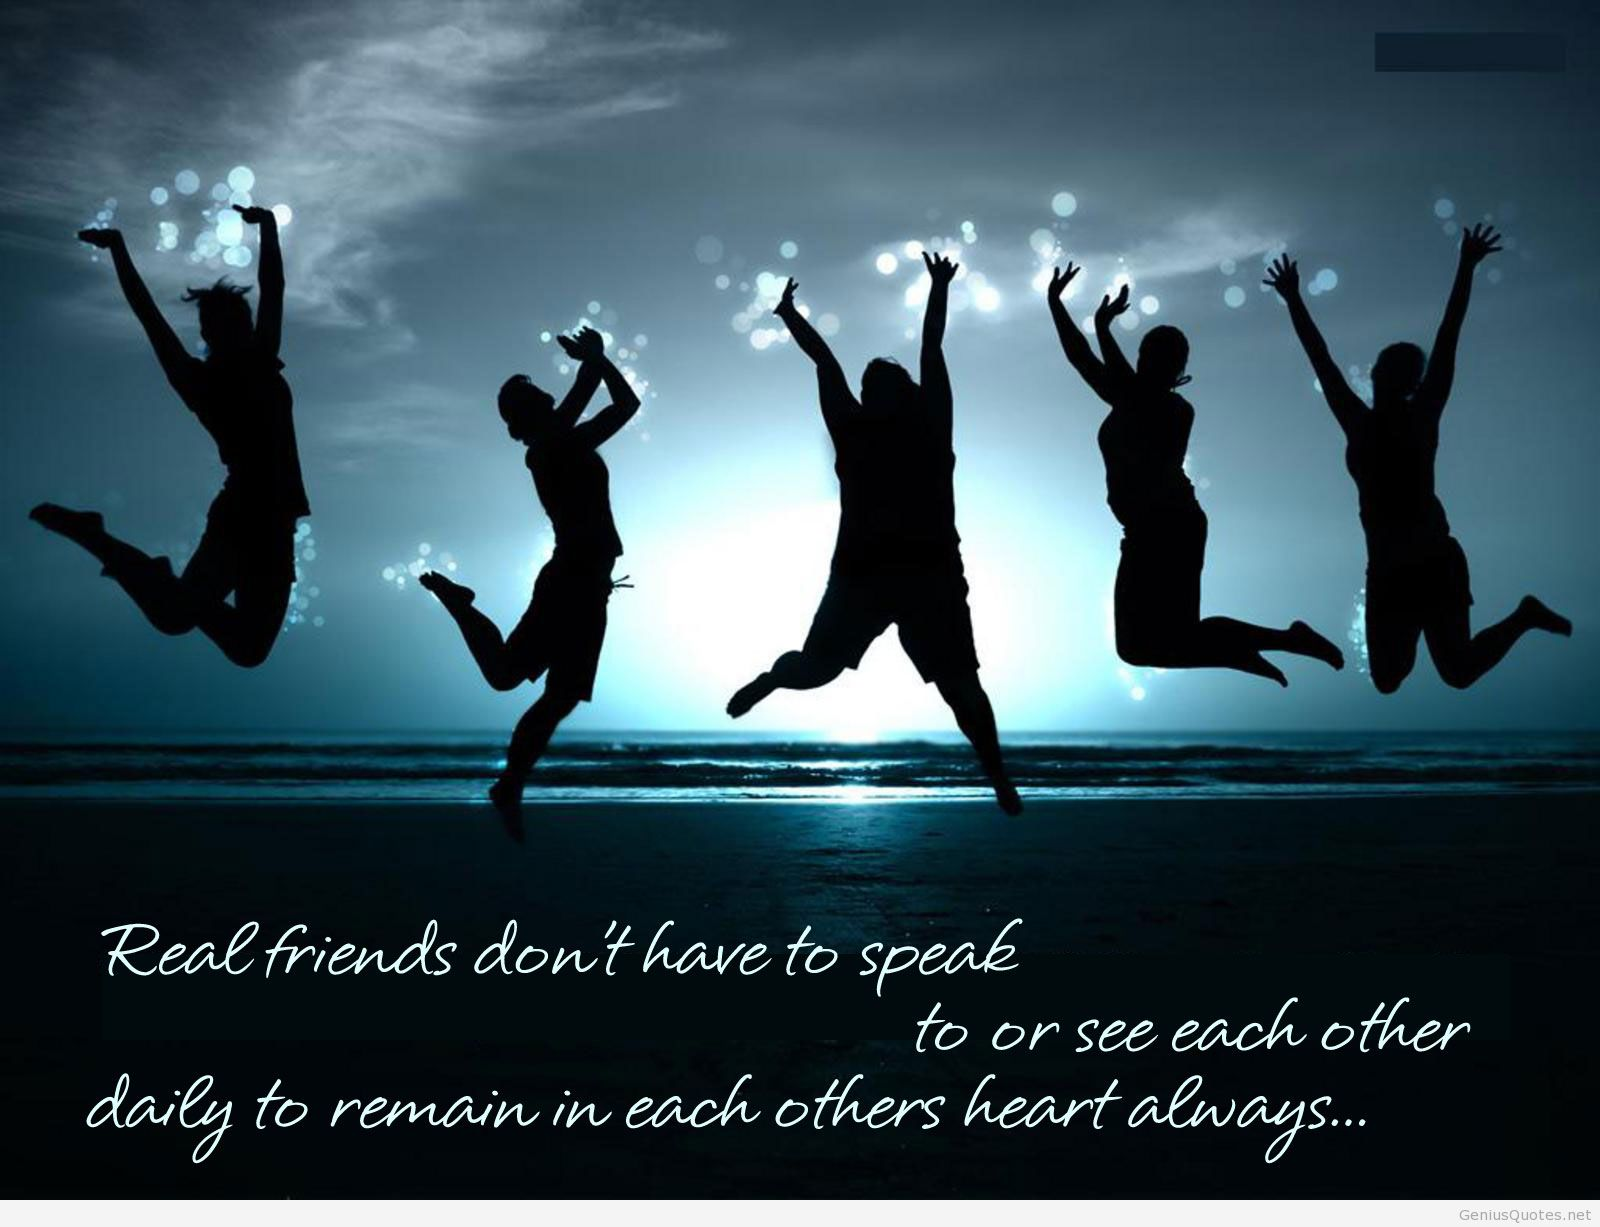 Friends Forever Image download best HD   digitalimagemakerworldcom 1600x1227